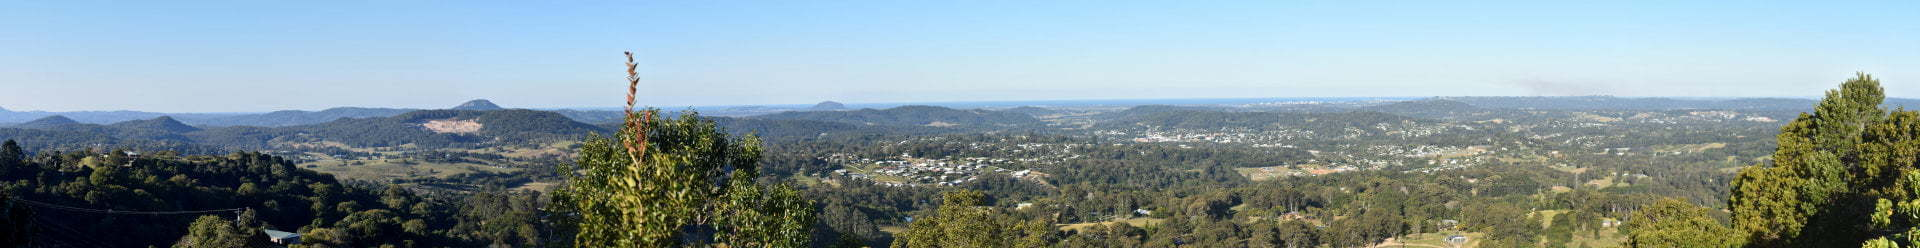 Panoramic view of the Sunshine Coast from Dulong Lookout